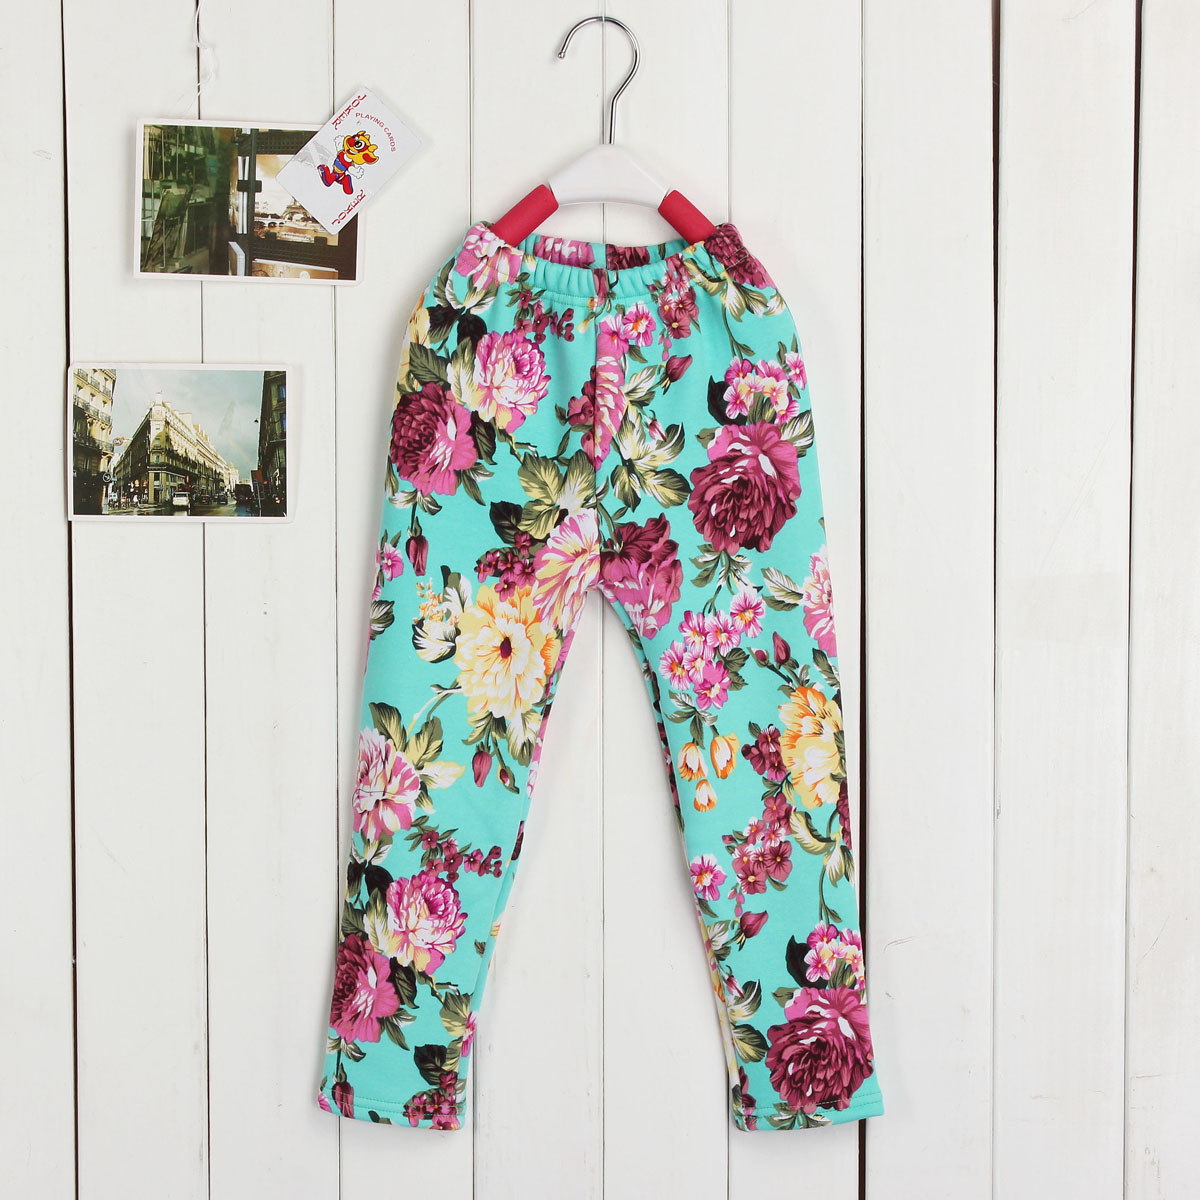 1 Pcs Child Winter Warm Trousers Baby Kids Floral Pants Girls leggings